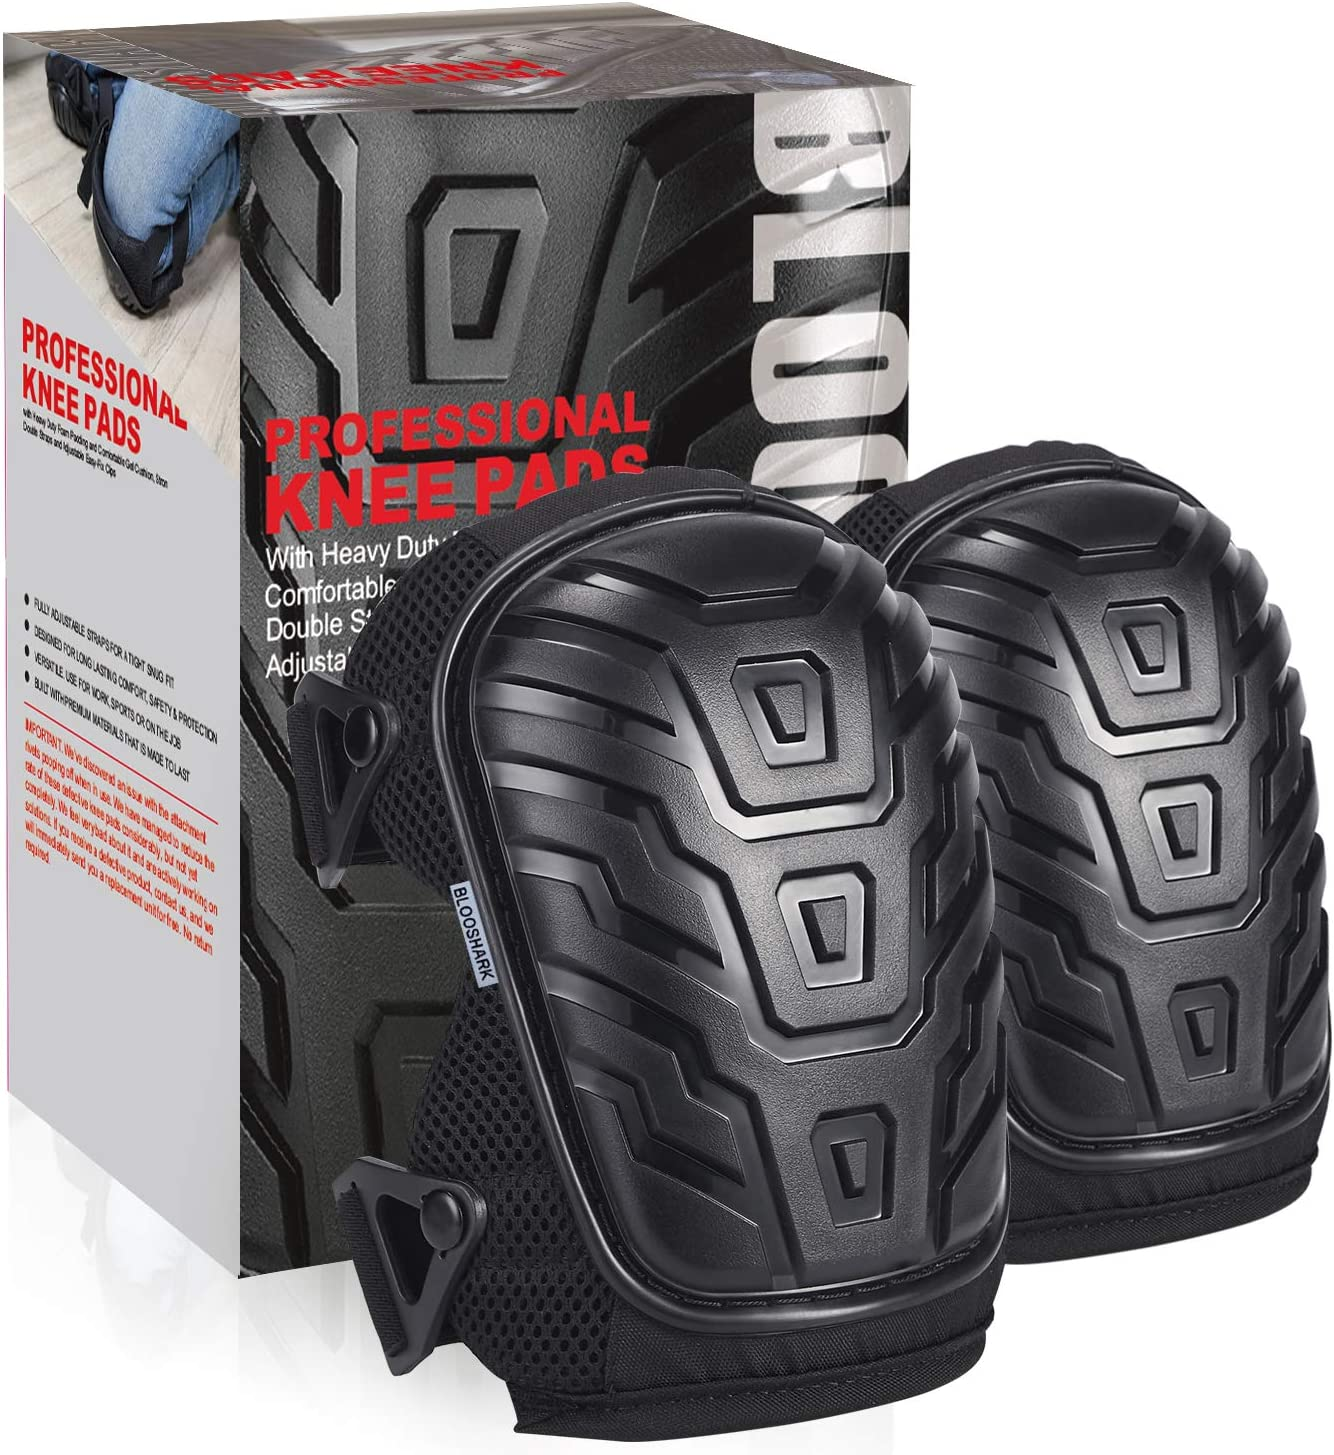 Professional Knee Pads for Work Max 70% OFF Cushion Cheap mail order shopping Pad Gel - Soft